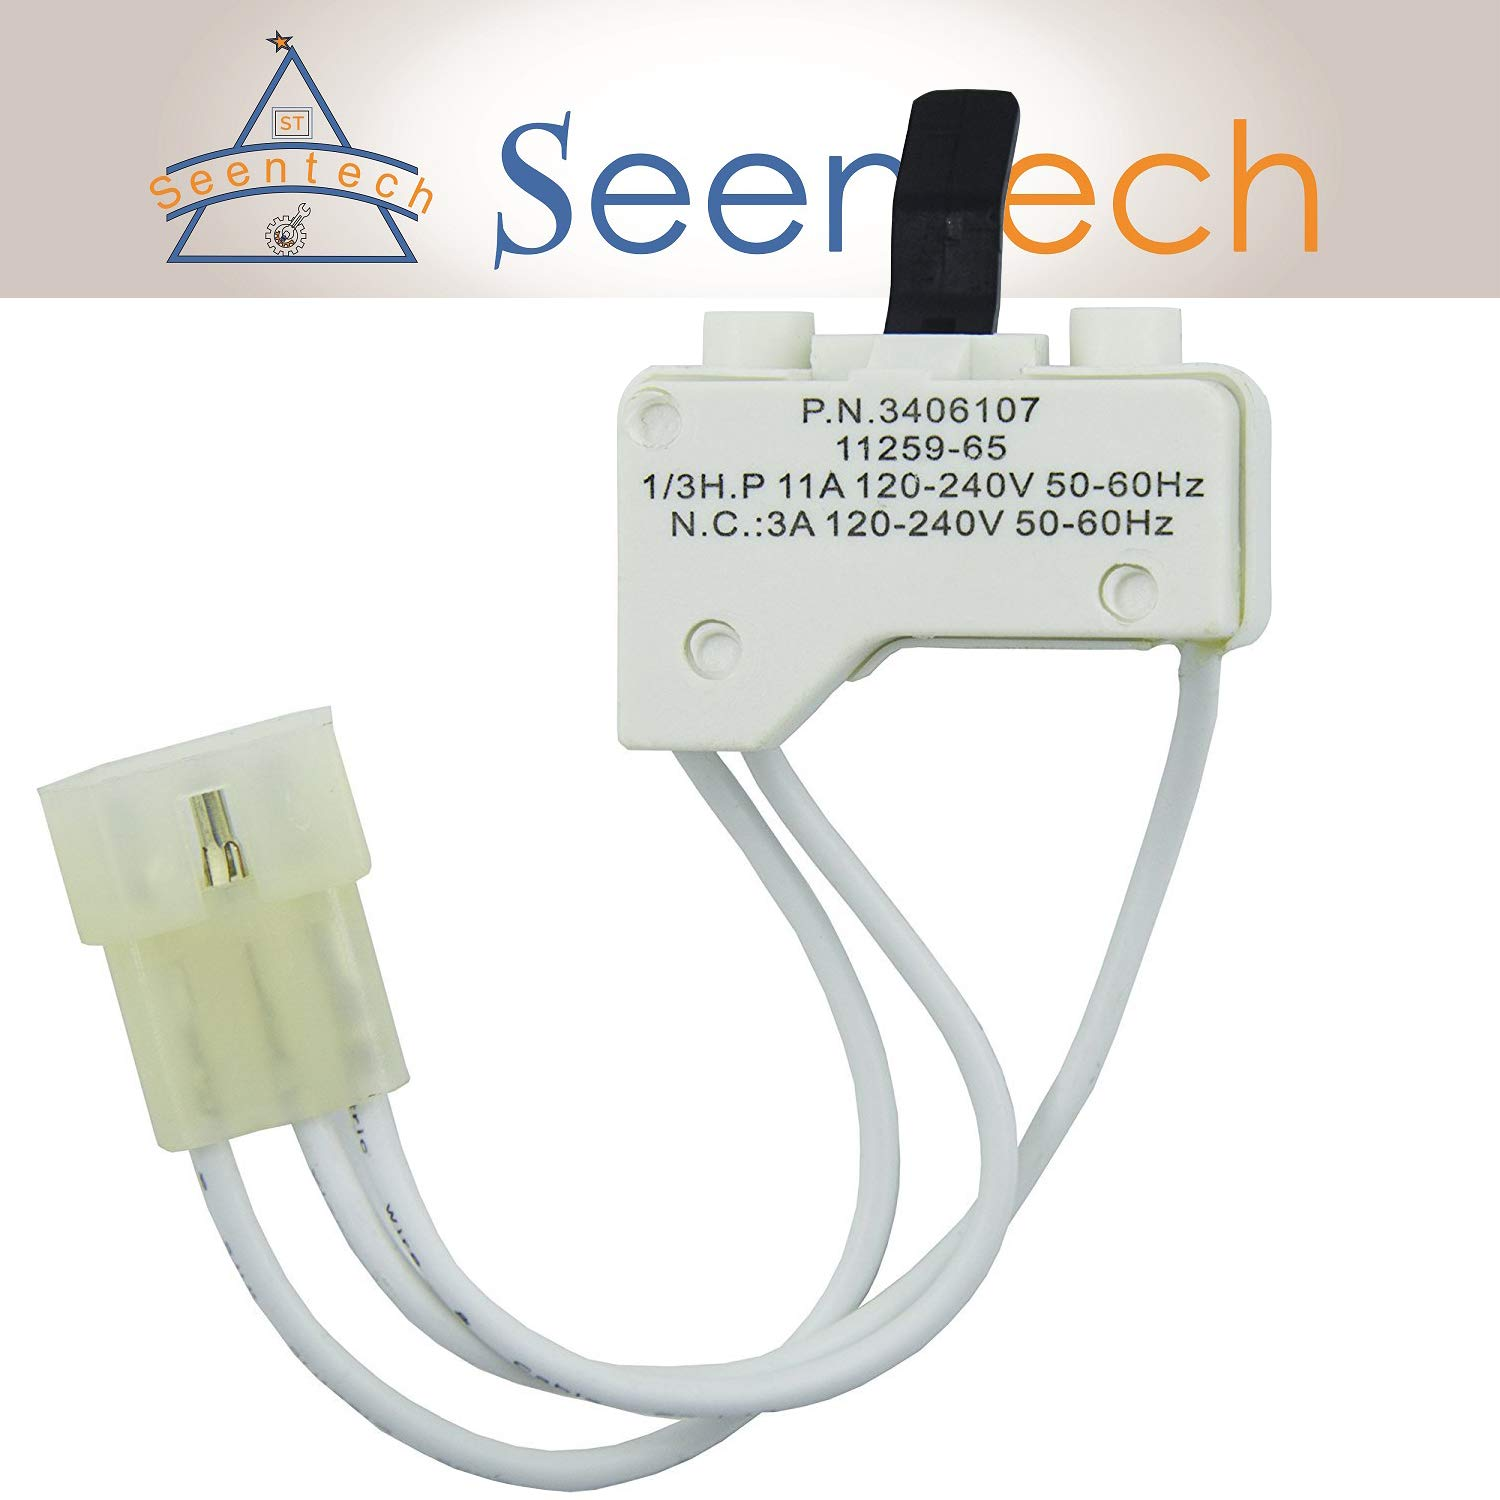 3406107 Dryer Door Switch Replacement by Seentech Exact for Kenmore & Whirlpool Dryers - Replaces Part Numbers 3406101, 3406109, PS11741701, AP6008561,WP3406107, 3405100, 3405101, 3406100